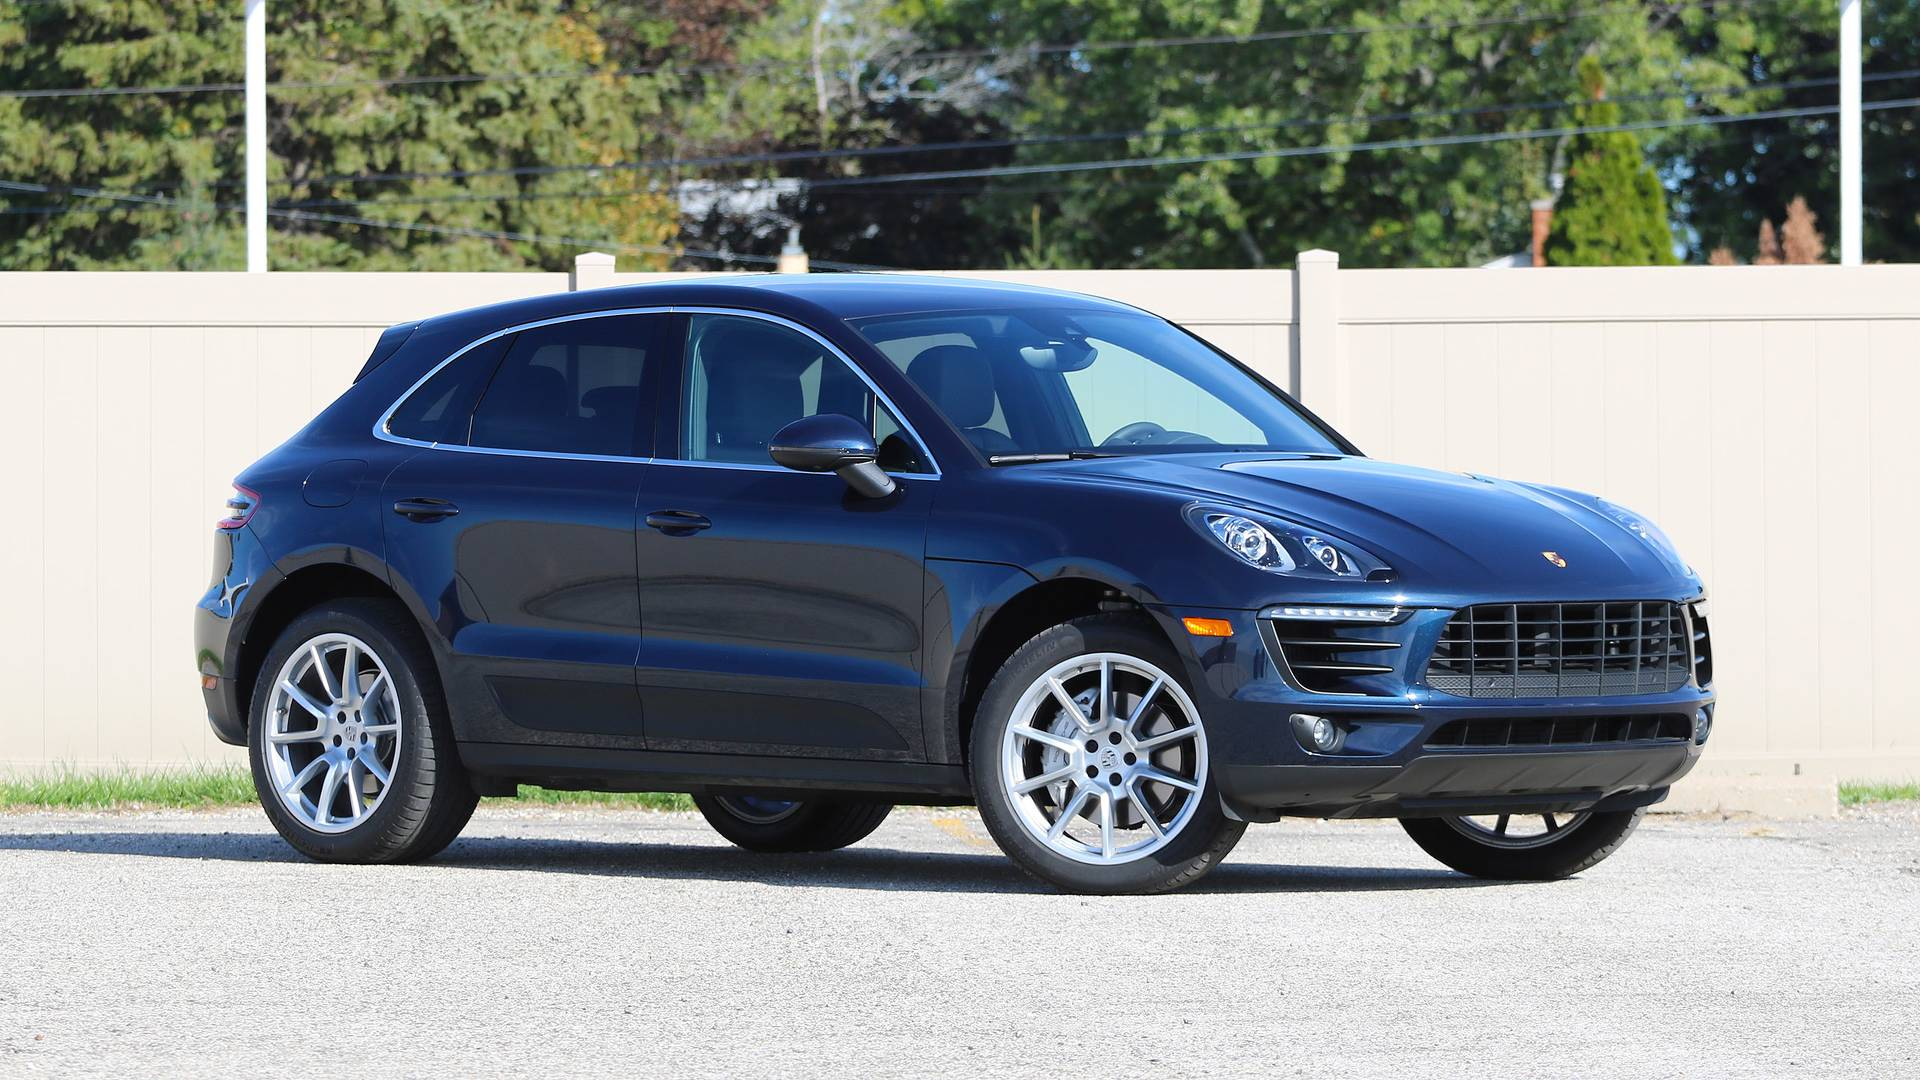 2017 porsche macan s review sports car on stilts. Black Bedroom Furniture Sets. Home Design Ideas